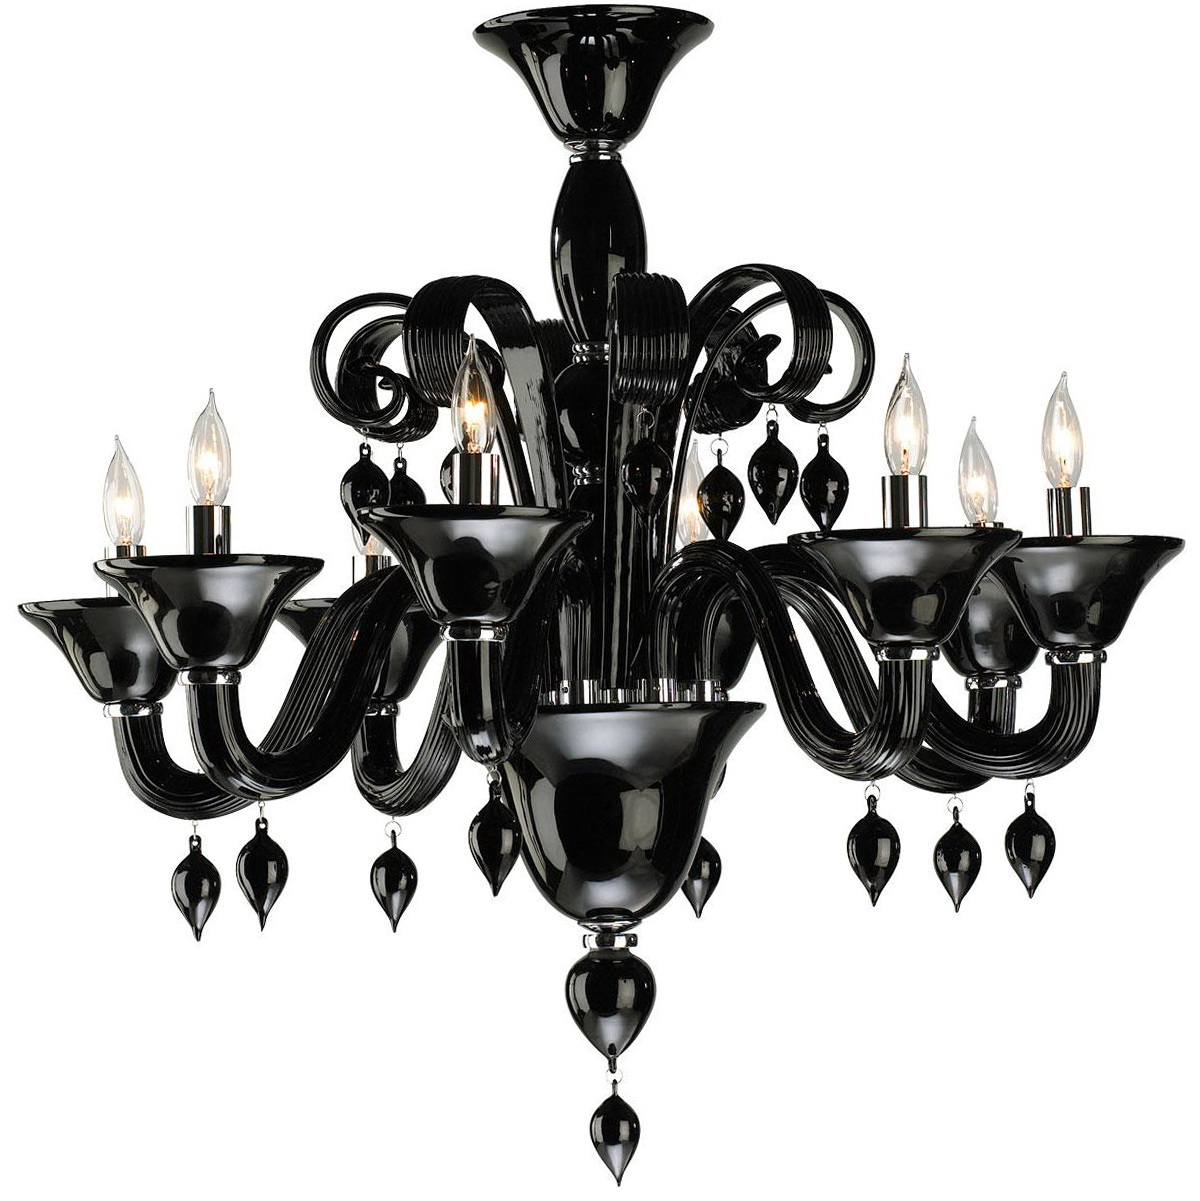 Black Iron Chandeliers With Crystals